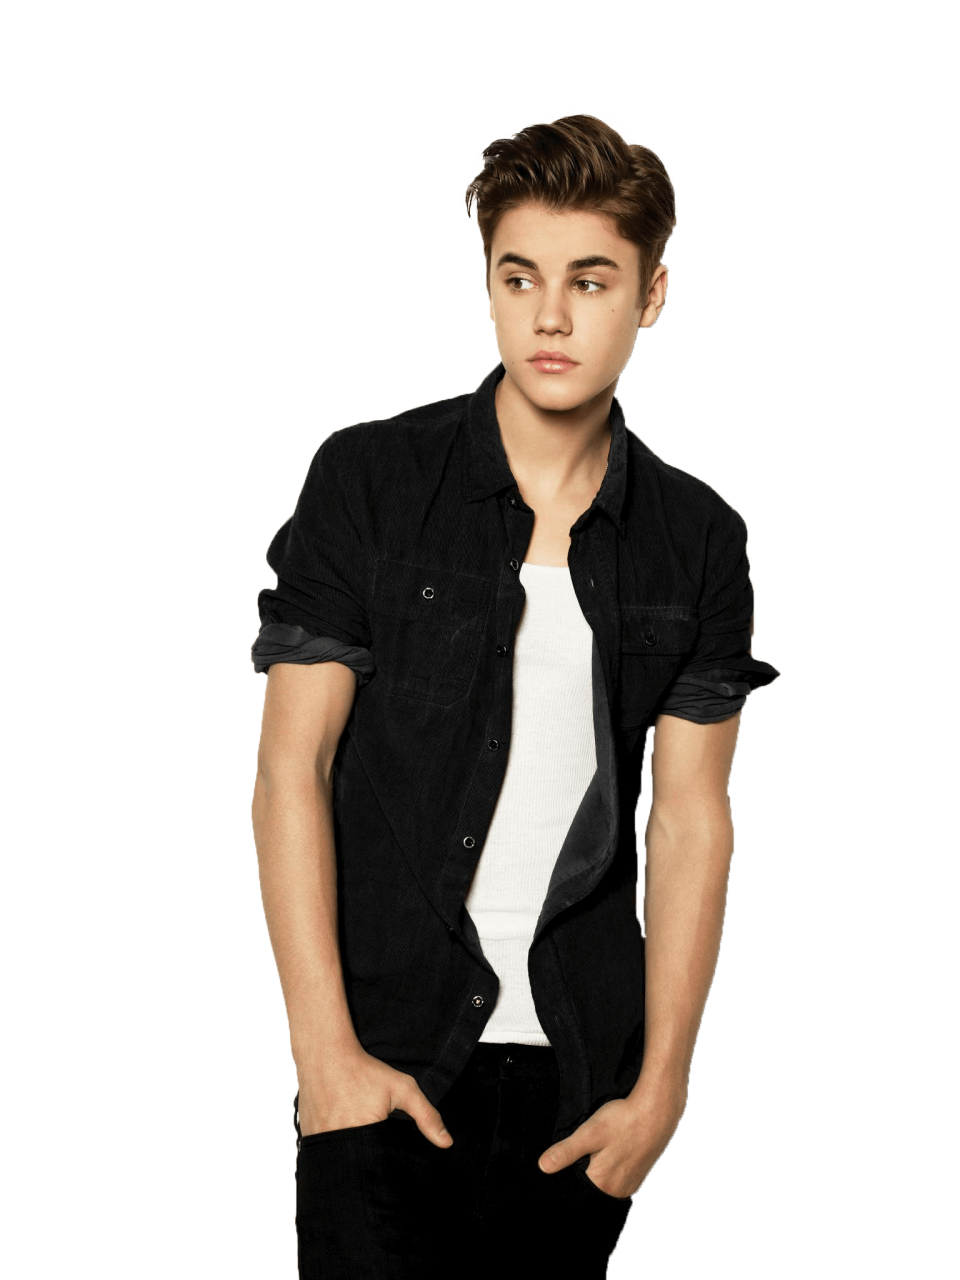 Standing Justin Bieber PNG Image